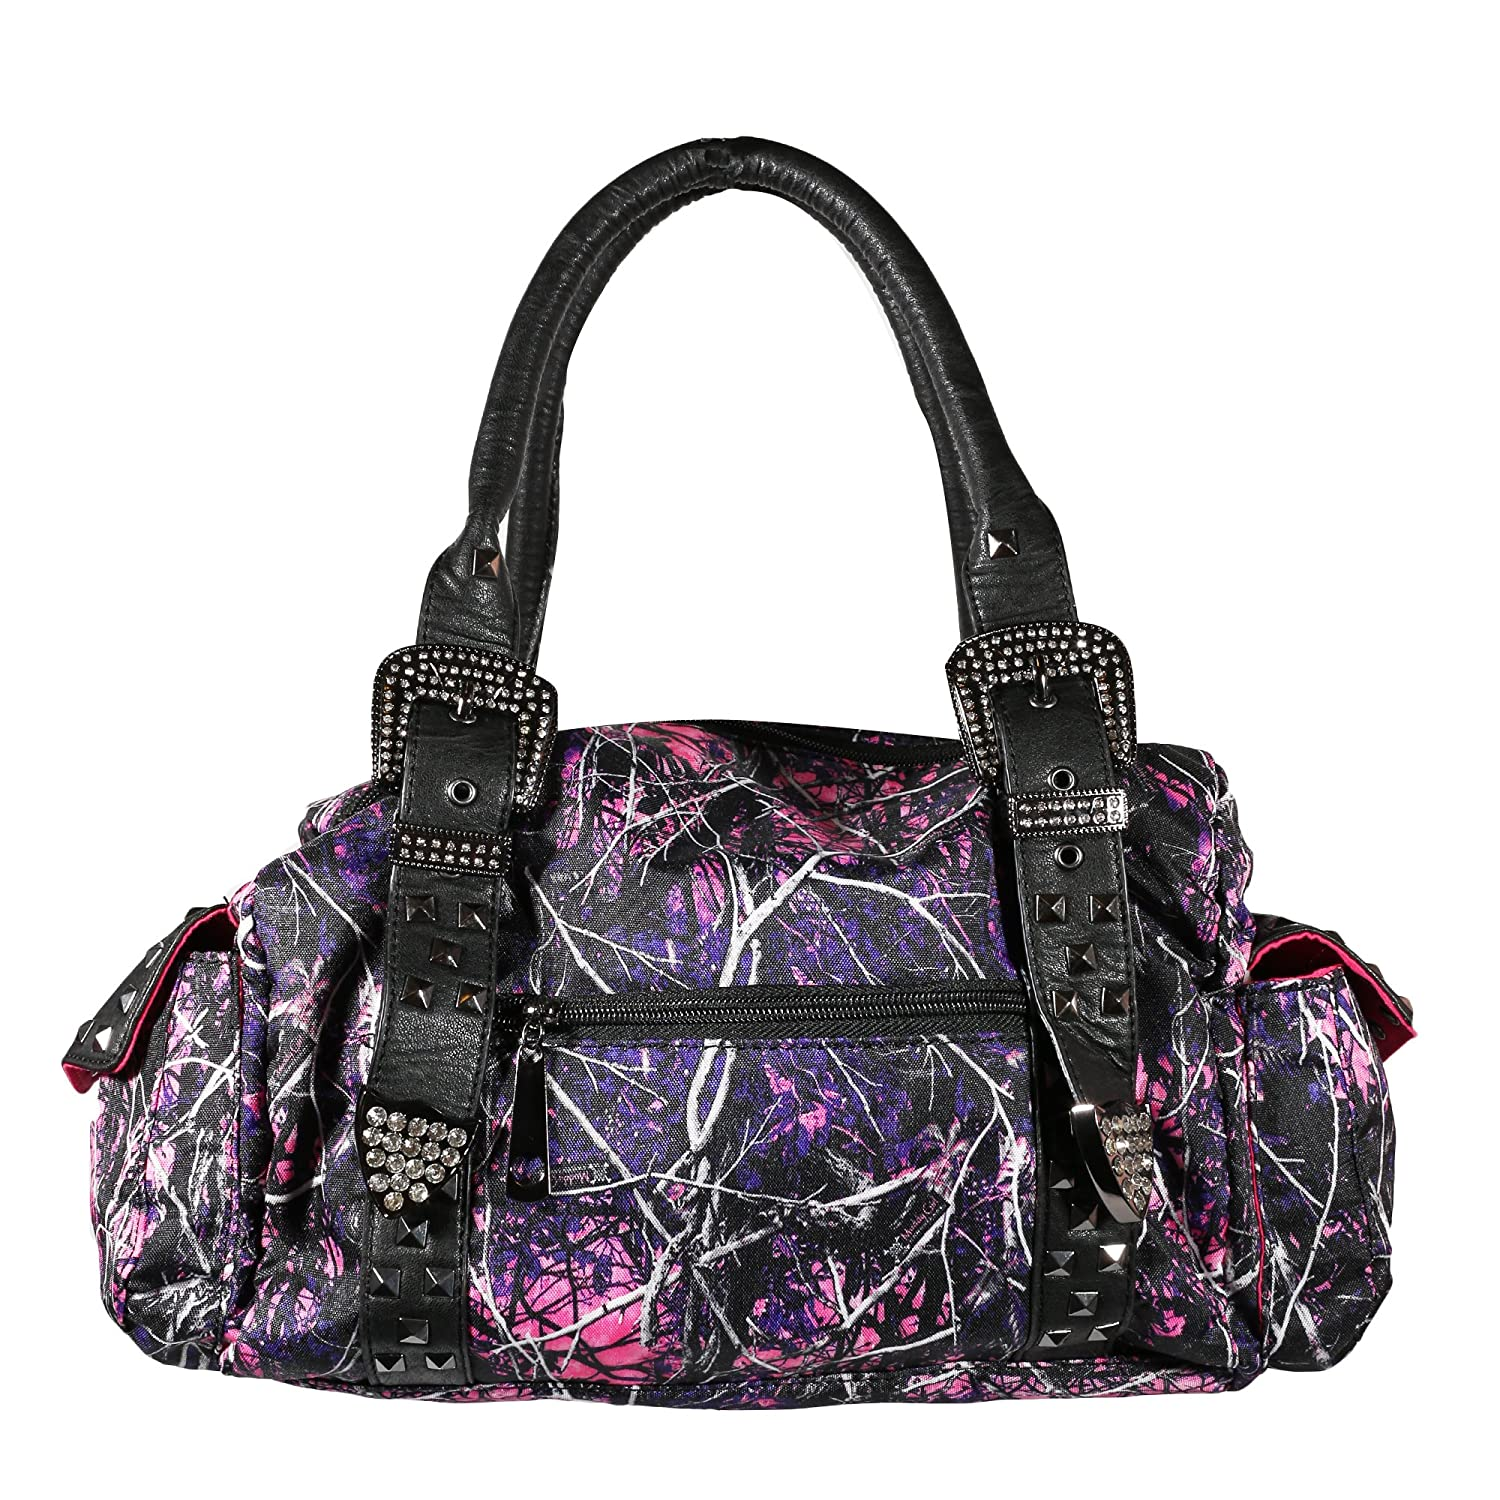 Muddy Girl Concealed Handgun Satchel Camouflage Purse